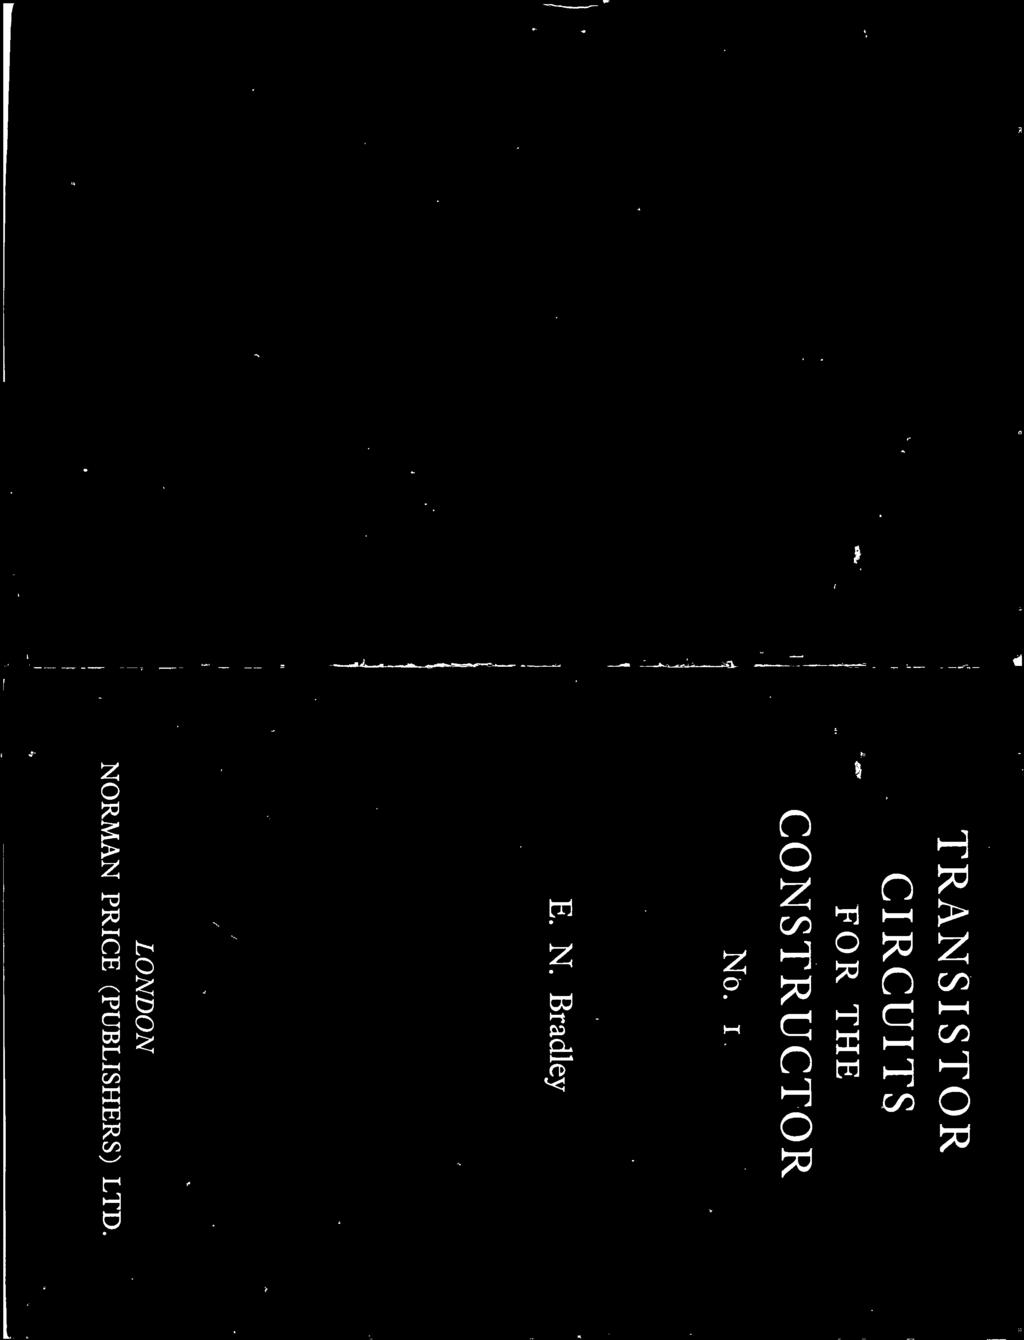 For The Constructor Transistor Circuits No 1 E N Bradley Pdf Two Ic Am Radio Kit With Training Course Model Am780k Electronic 2 London Norman Price Publishers Ltd